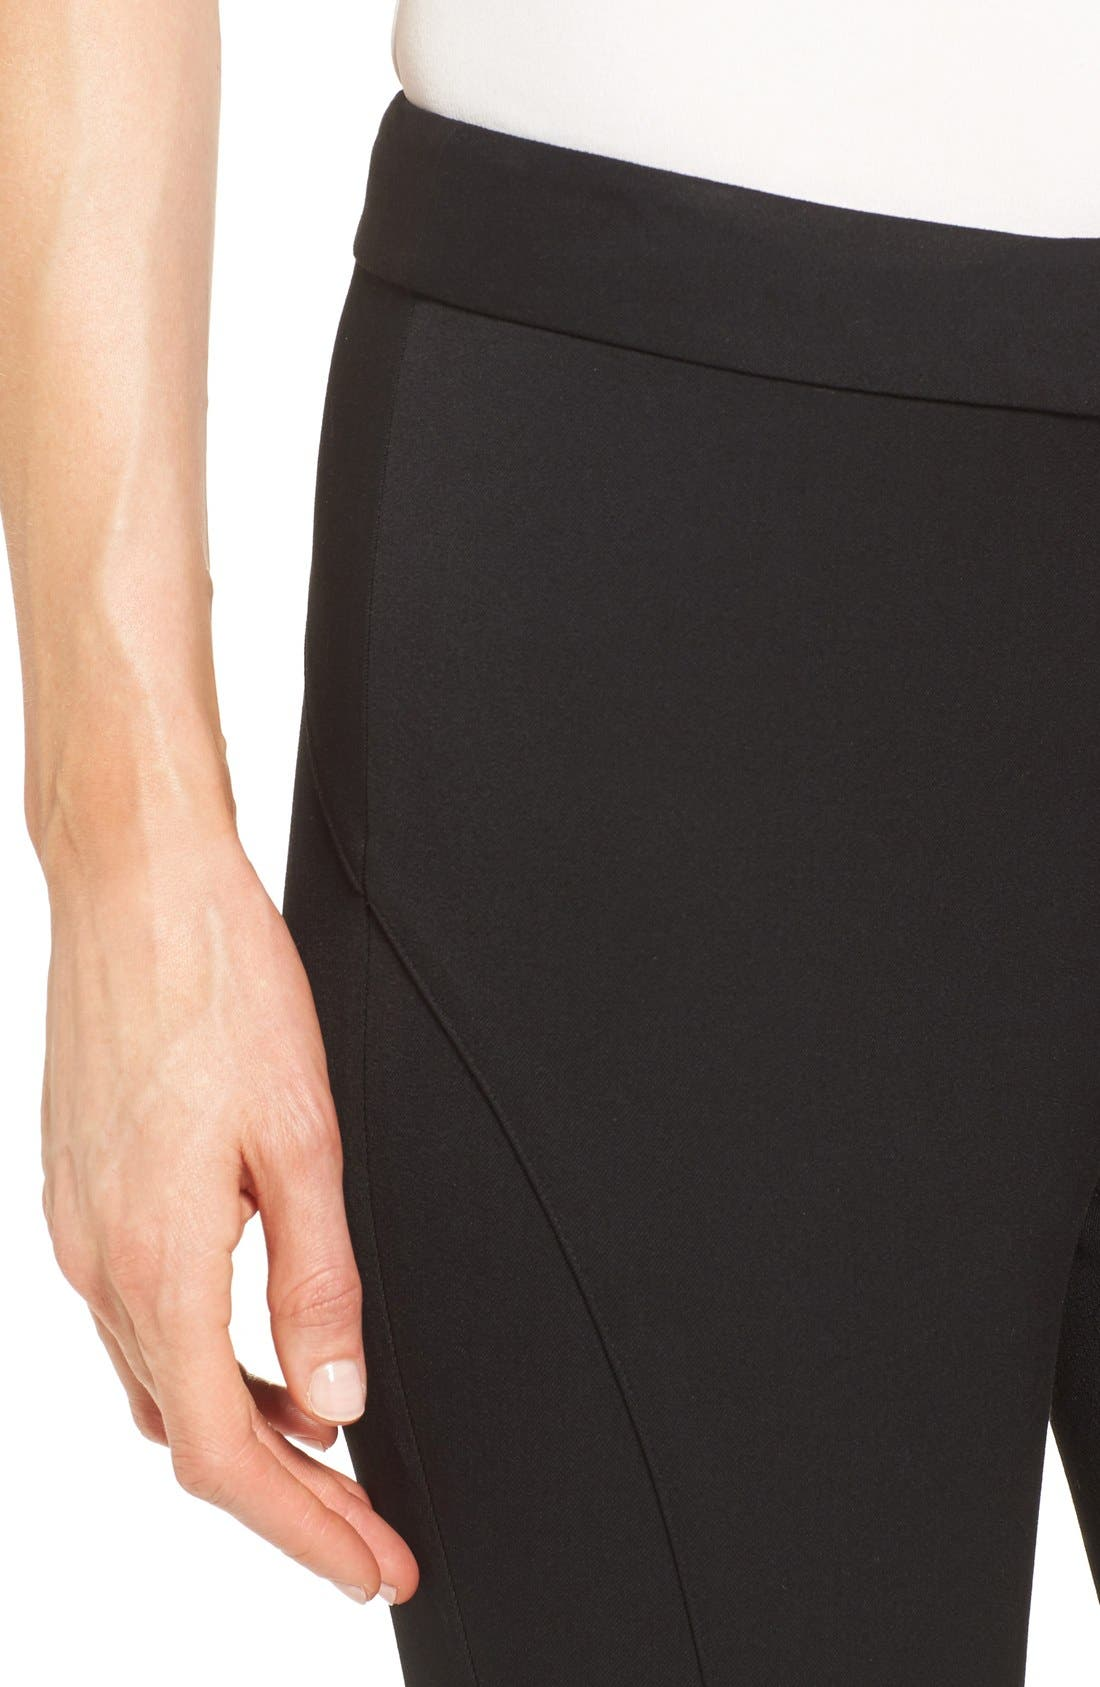 VINCE CAMUTO, Stretch Twill Skinny Pants, Alternate thumbnail 4, color, RICH BLACK